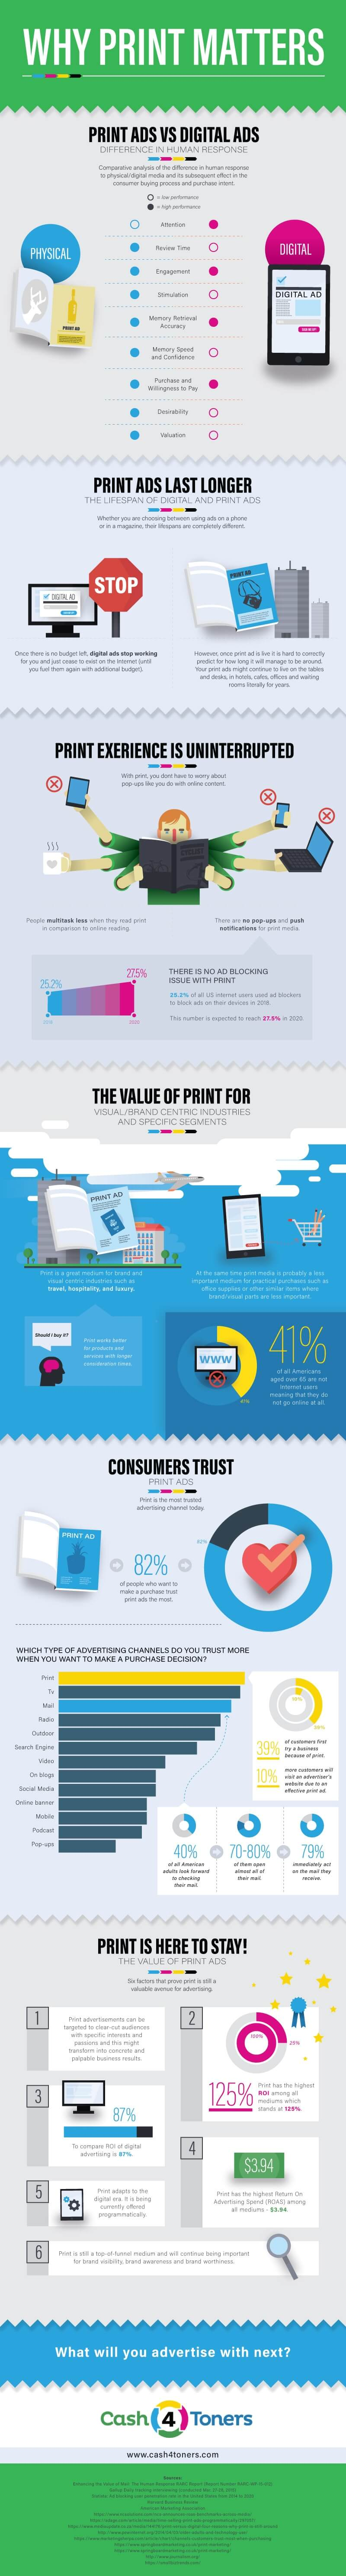 infographic-why-print-matters